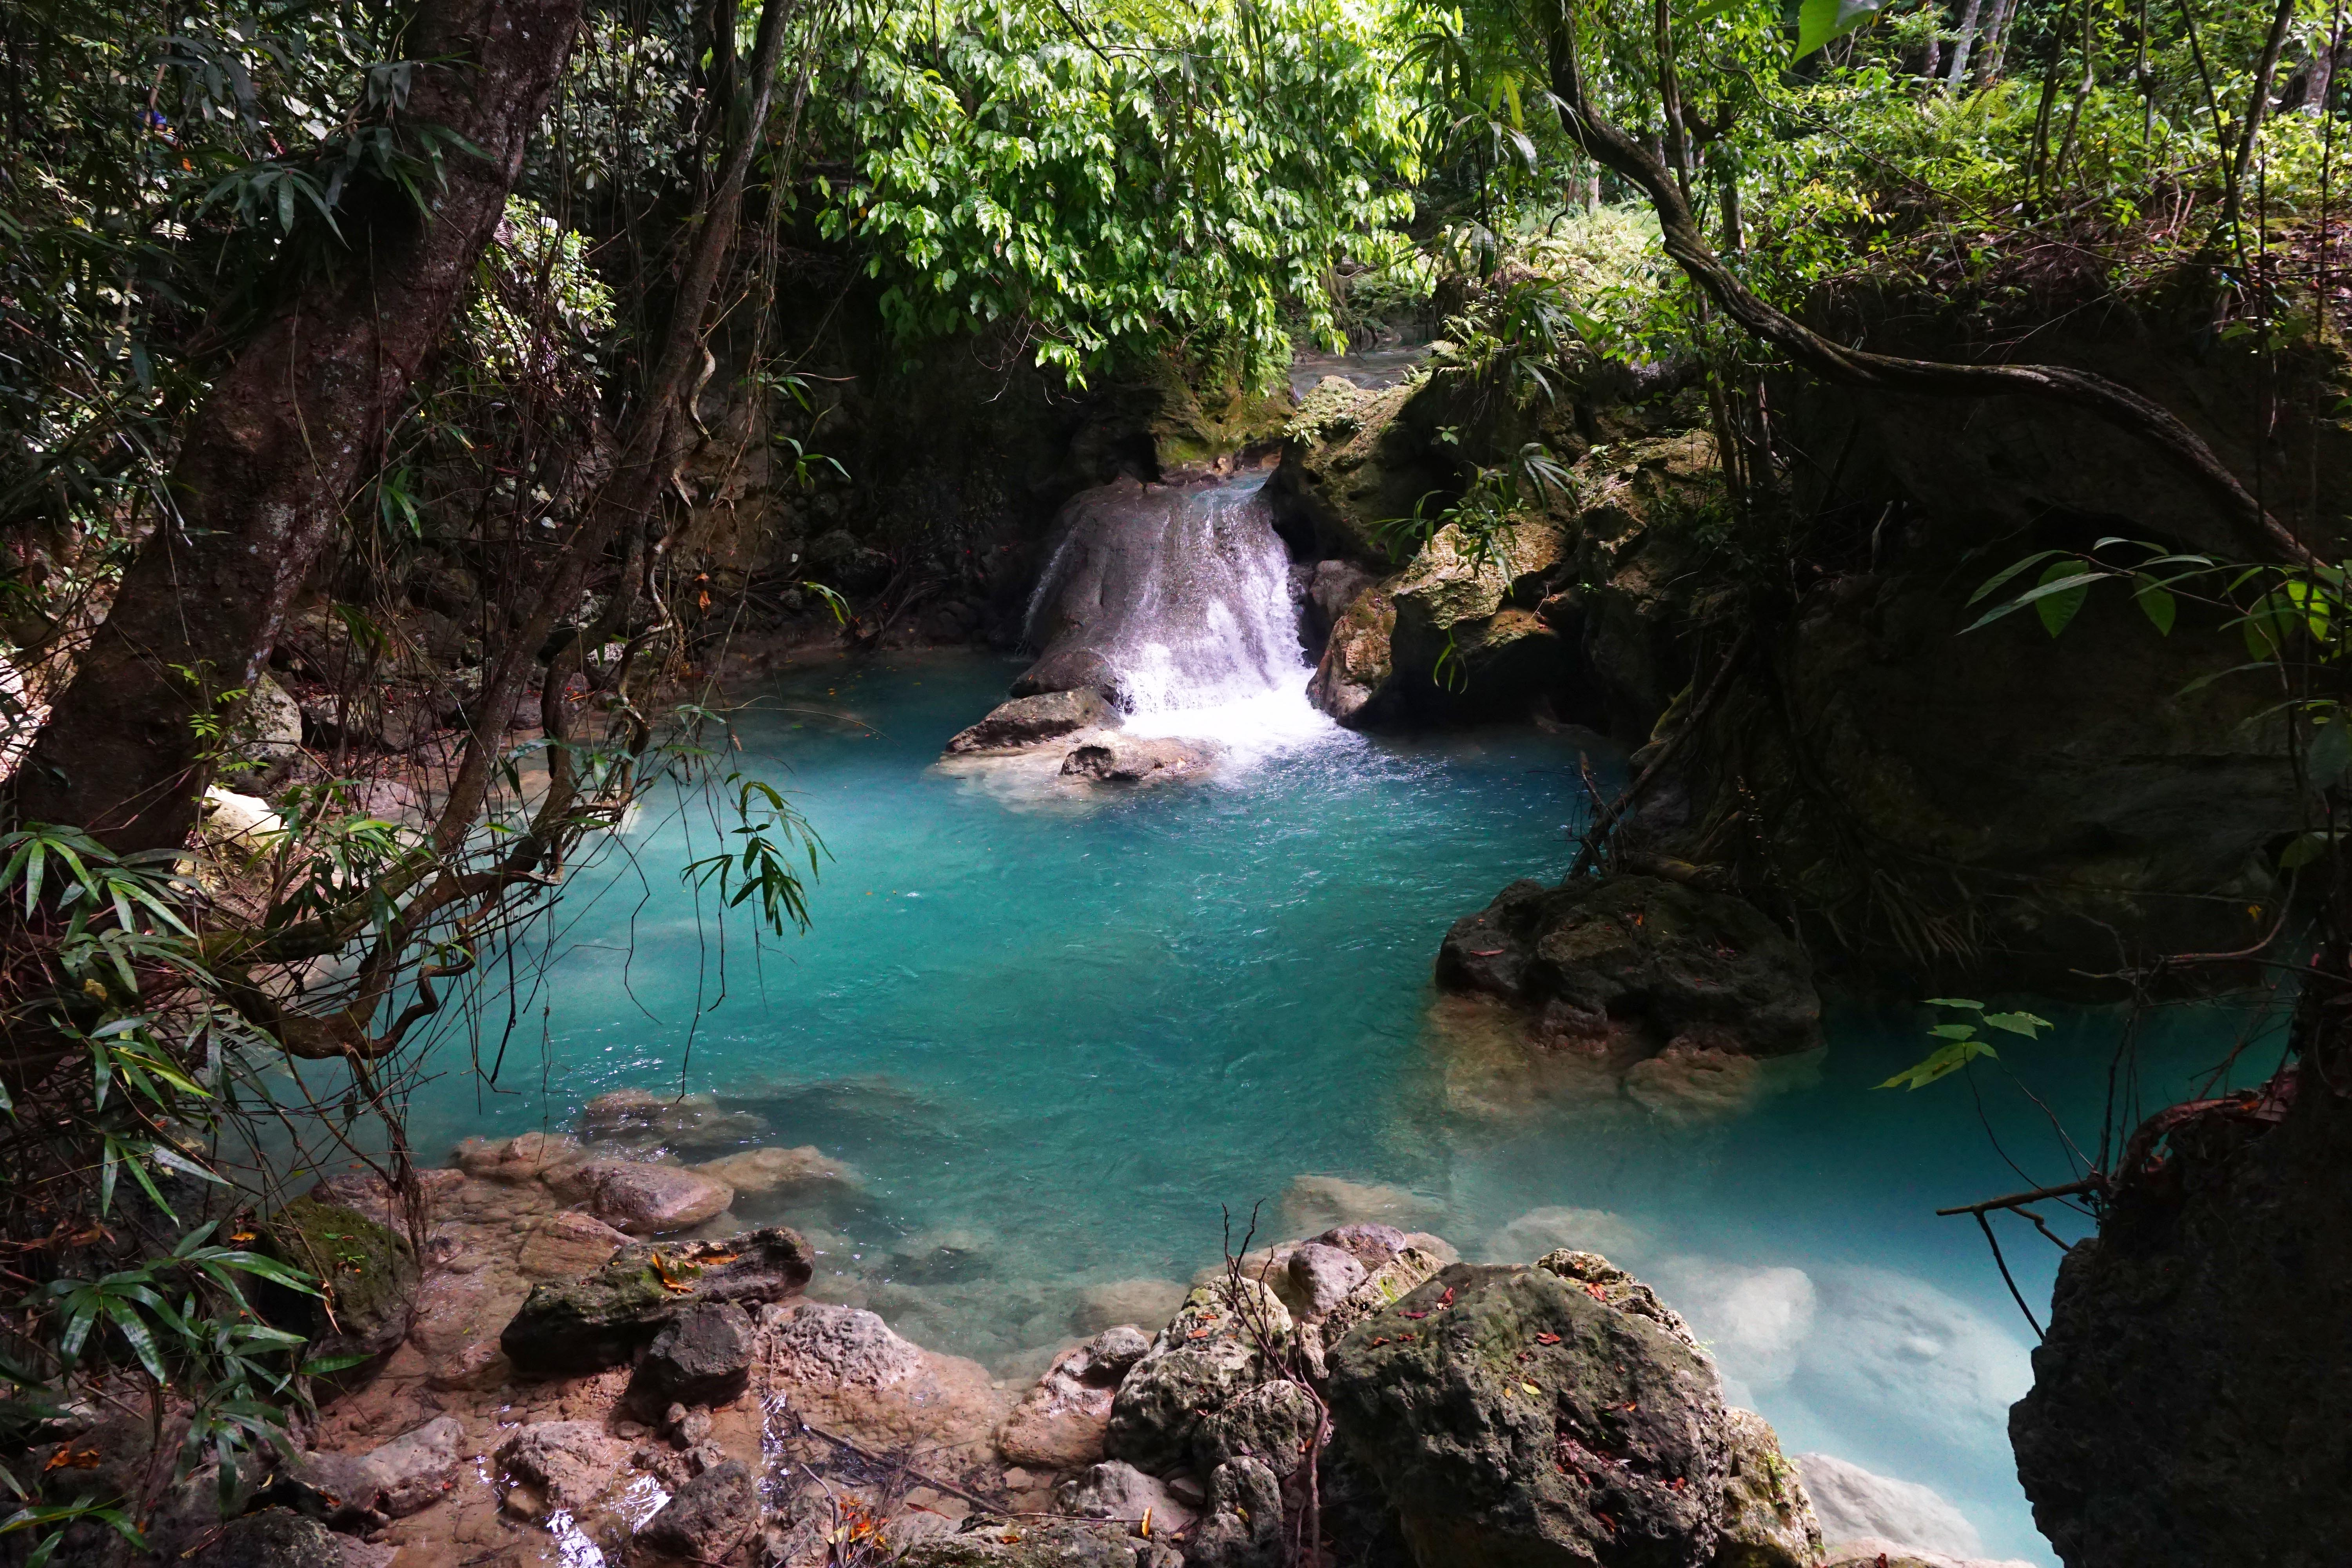 Even little streams like this one on the way to Kawasan are already picture-perfect. Photo by Louie Lapat/Rappler